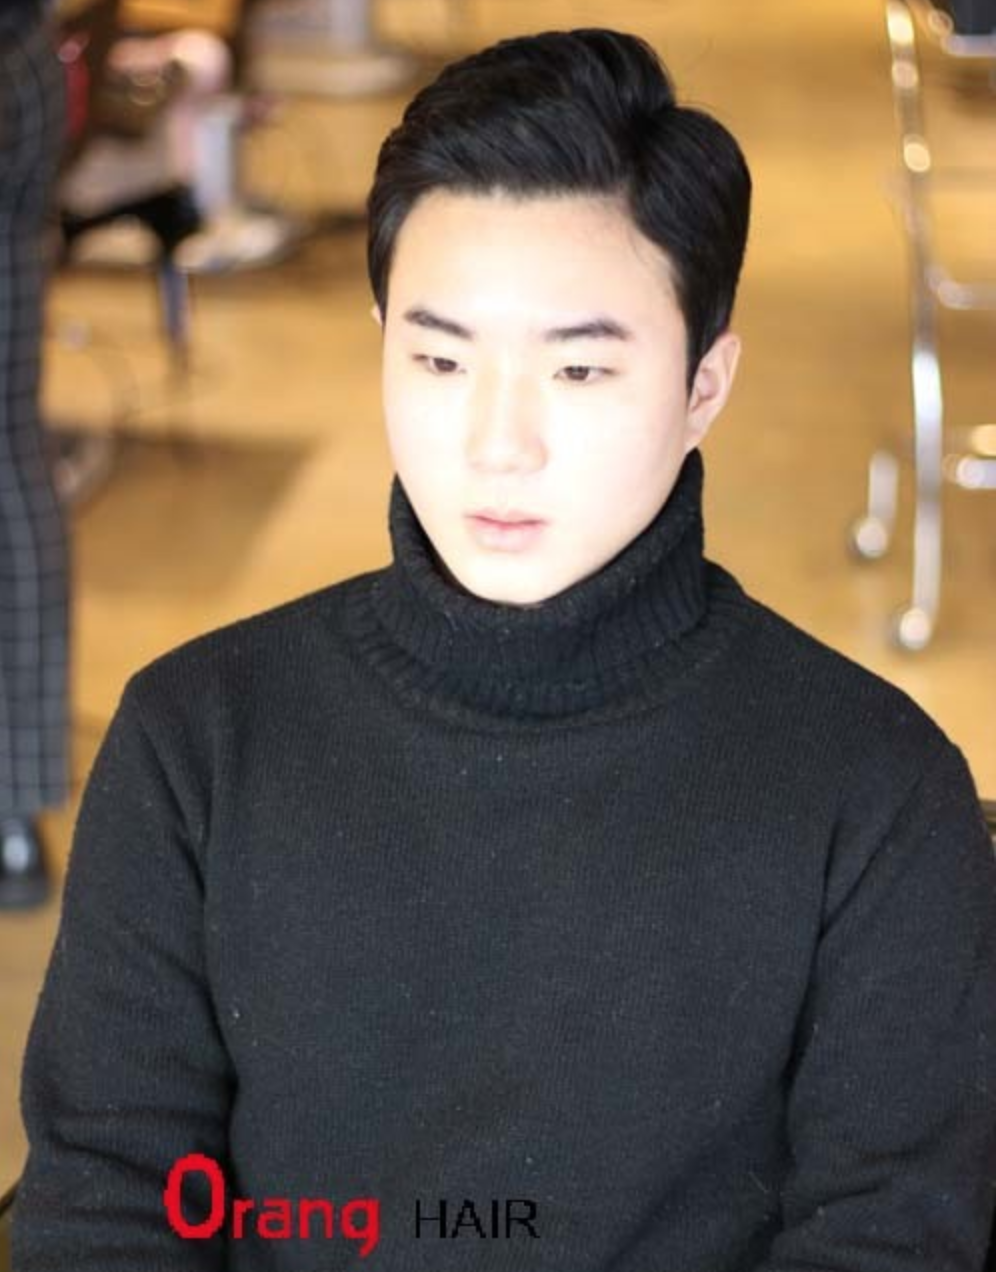 …and After. Source:  https://cafe.naver.com/oranghair/72084